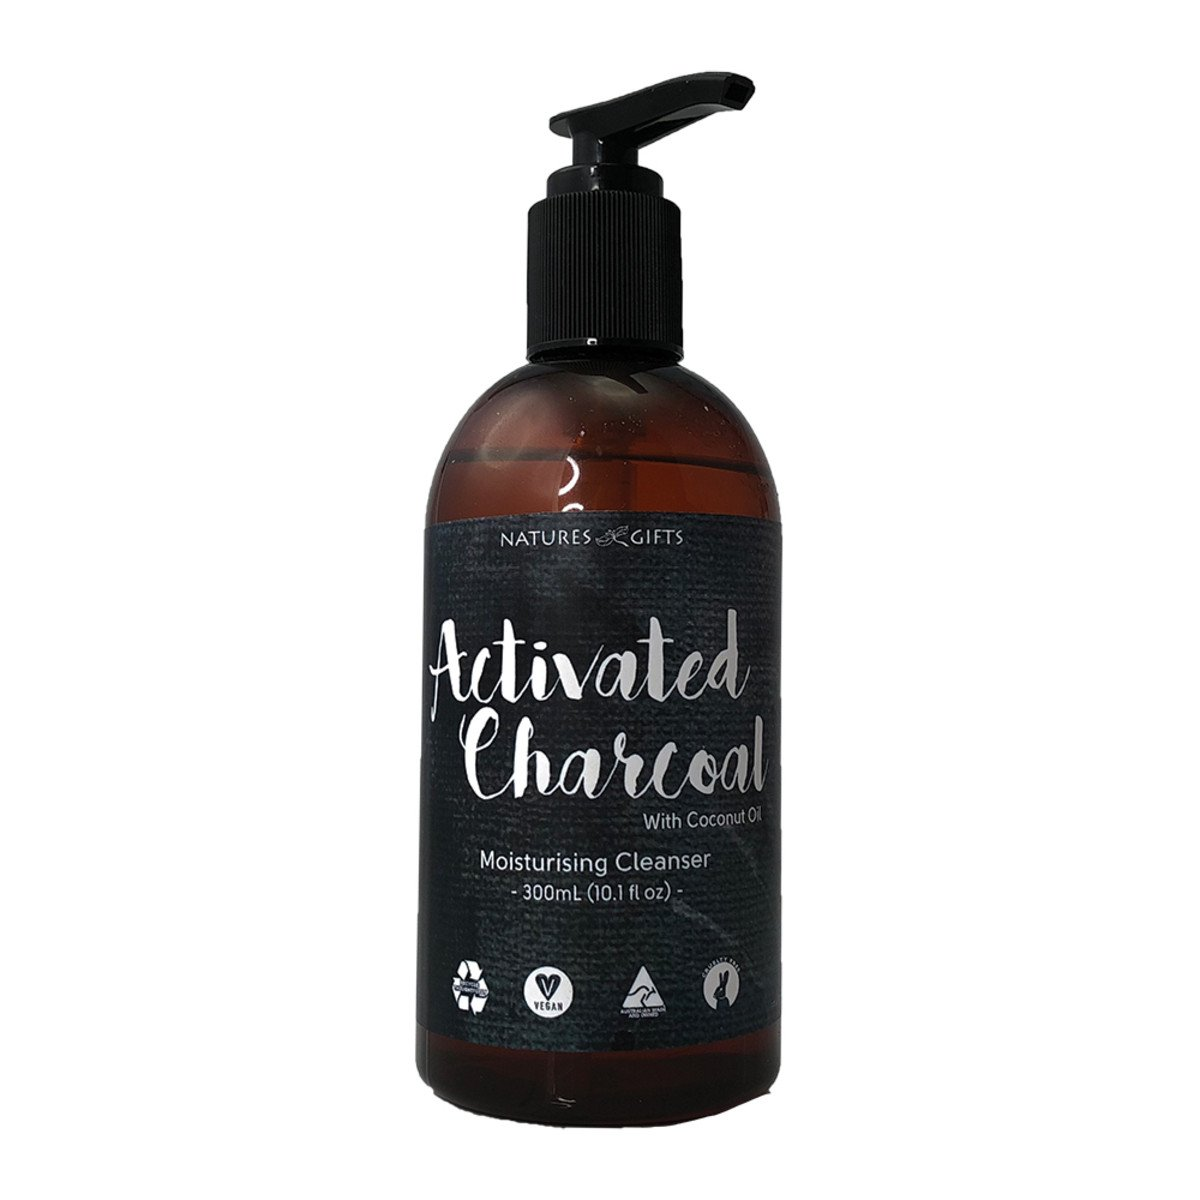 CLOVER FIELDS Natures Gifts Activated Charcoal with Coconut Oil  Moisturising Cleanser 300ml